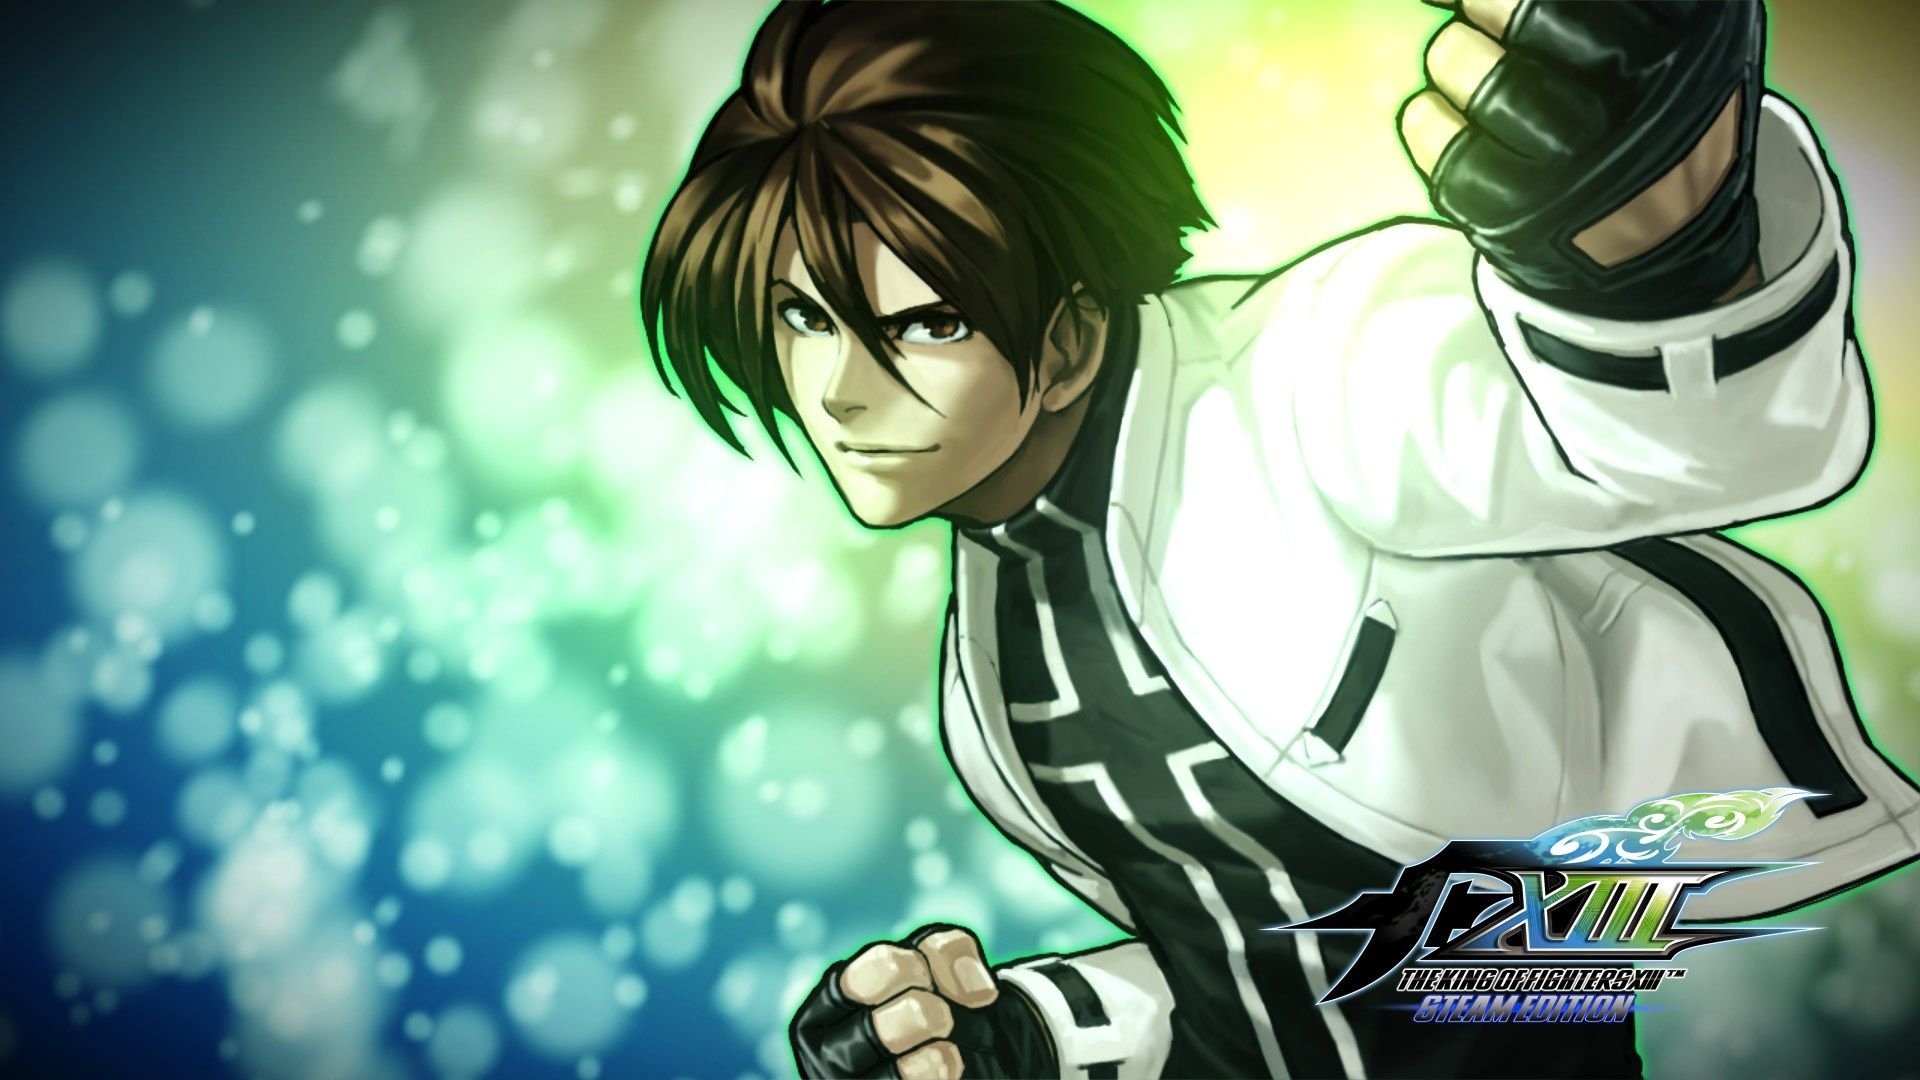 1920x1080 The King Of Fighters Xiii Steam Edition Game Wallpaper King Of Fighters Fighter Art Of Fighting